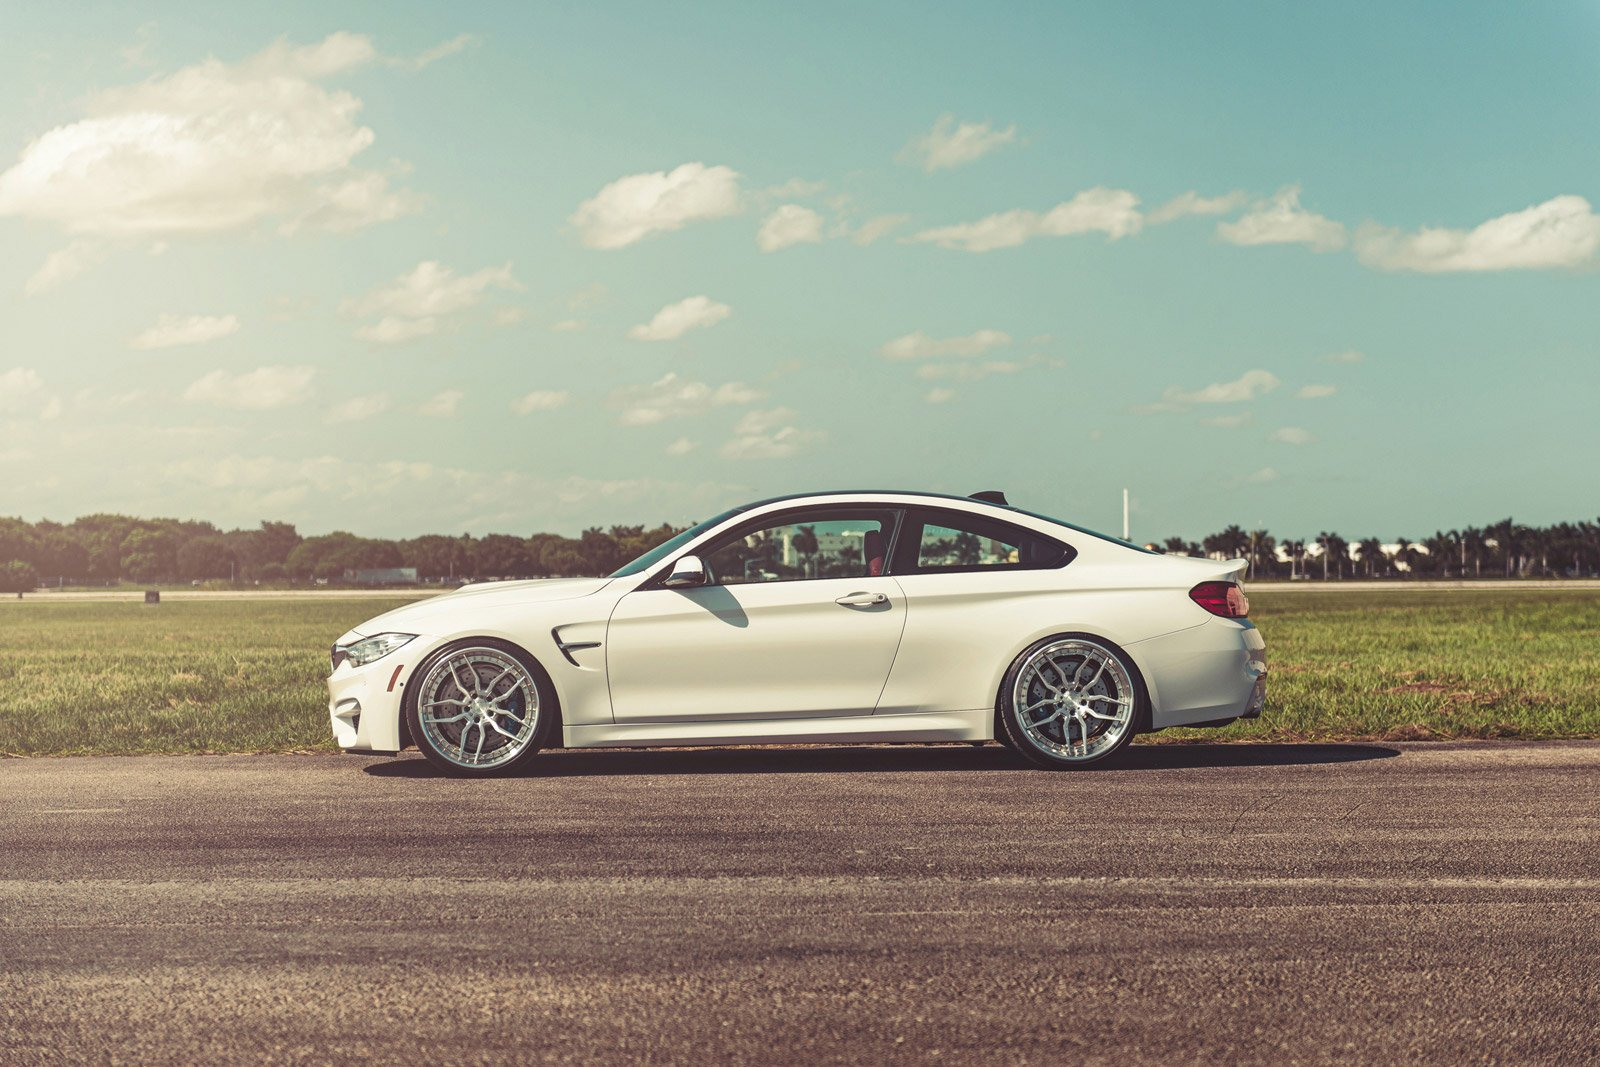 2014 bmw m4 adv1 wheels tuning wallpaper 1600x1067 447637 wallpaperup. Black Bedroom Furniture Sets. Home Design Ideas